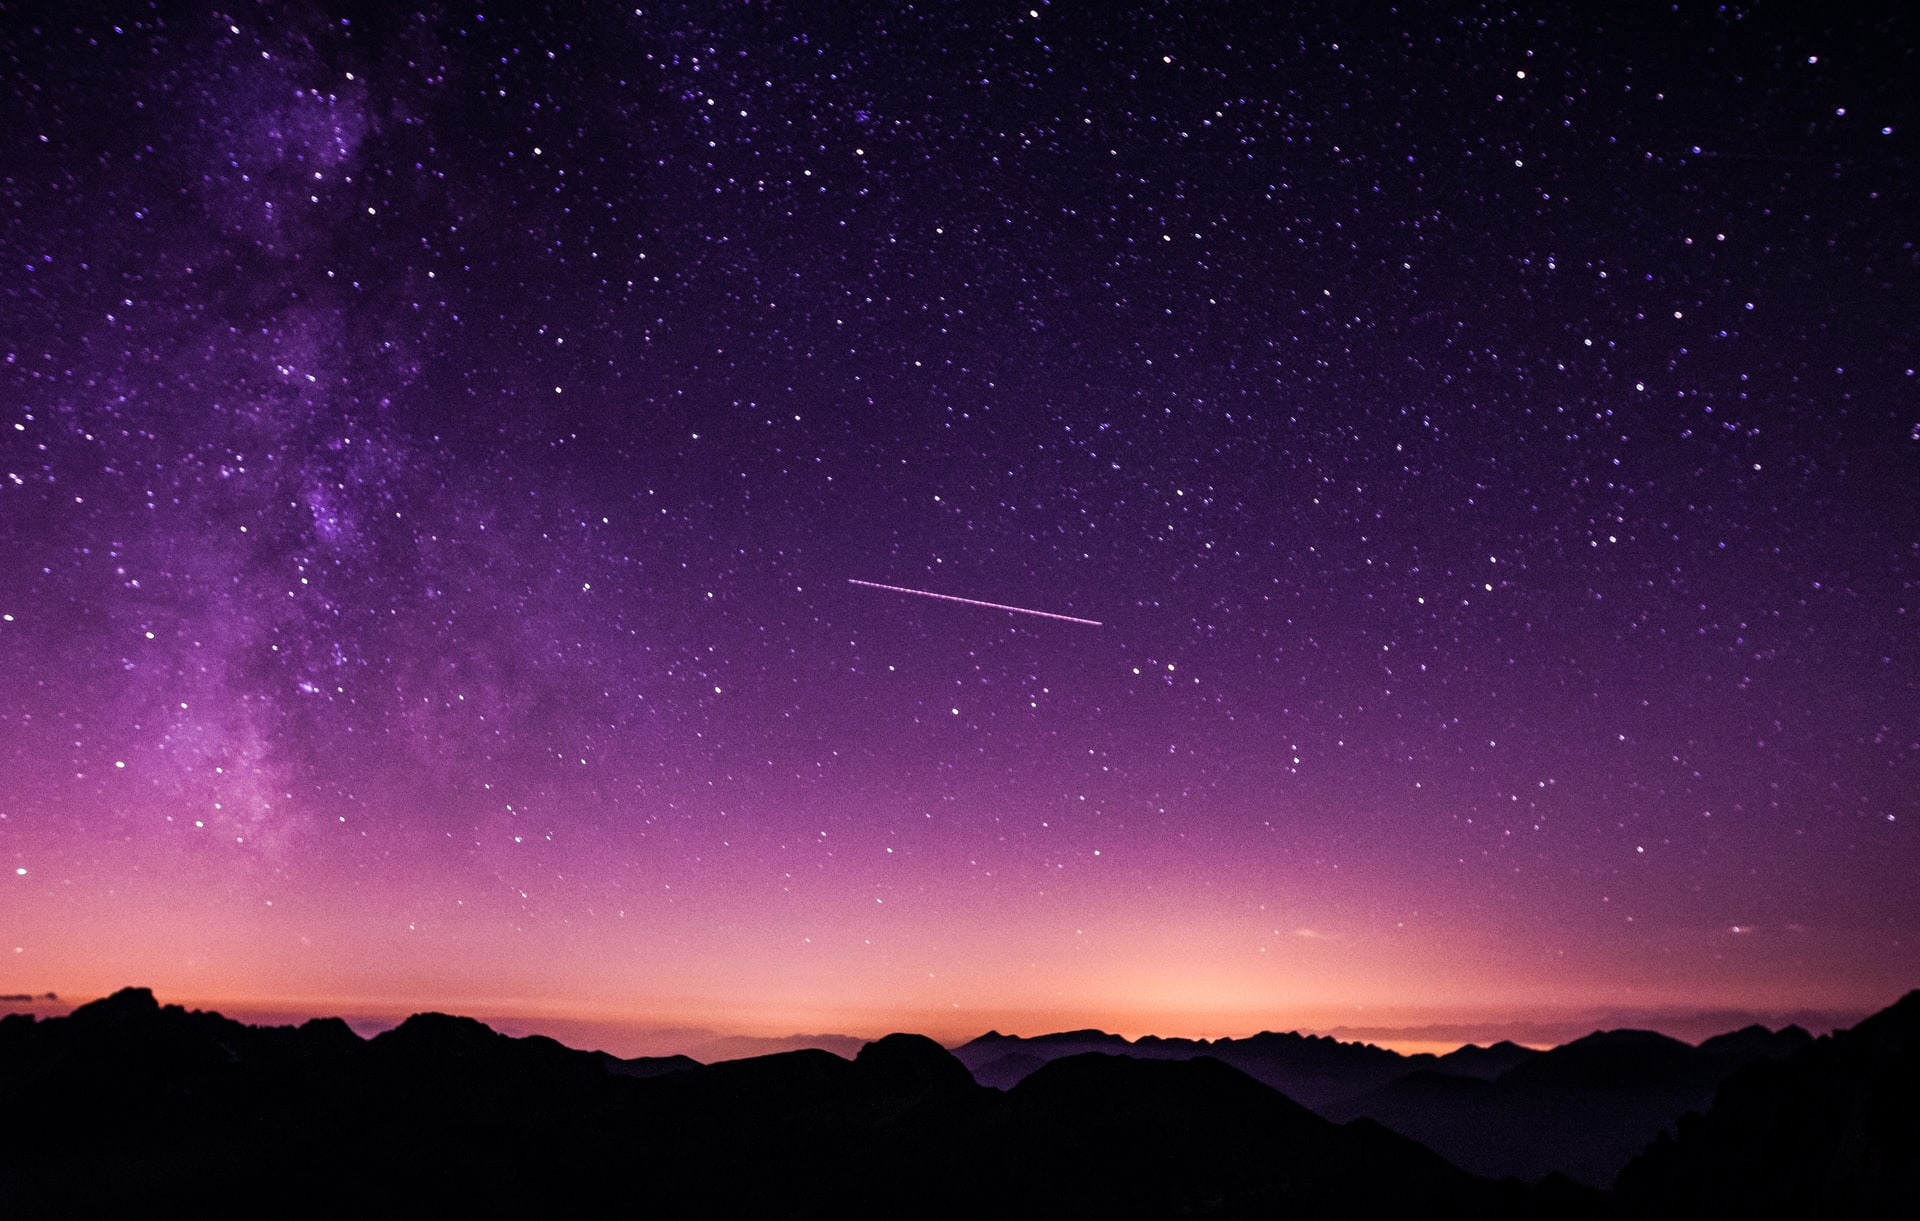 Above a dark landscape is a pink and purple sky. In the ski there are many stars illuminating along with a meteor.